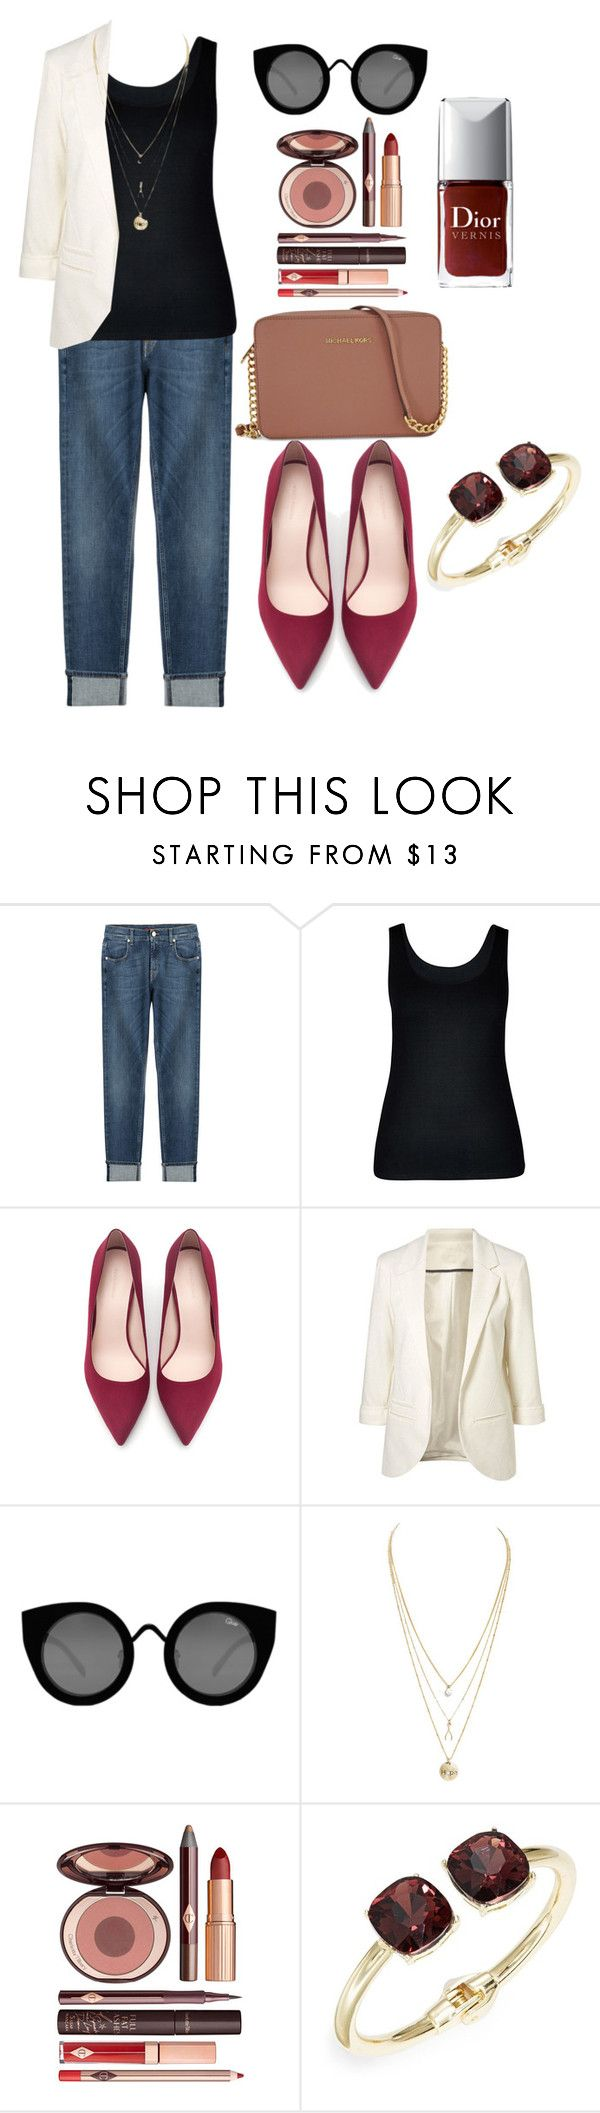 """""""friday Office look"""" by lizbeth-fuentes-rivera-ramirez ❤ liked on Polyvore featuring 7 For All Mankind, City Chic, Zara, Quay, Charlotte Tilbury, Cara and Michael Kors"""